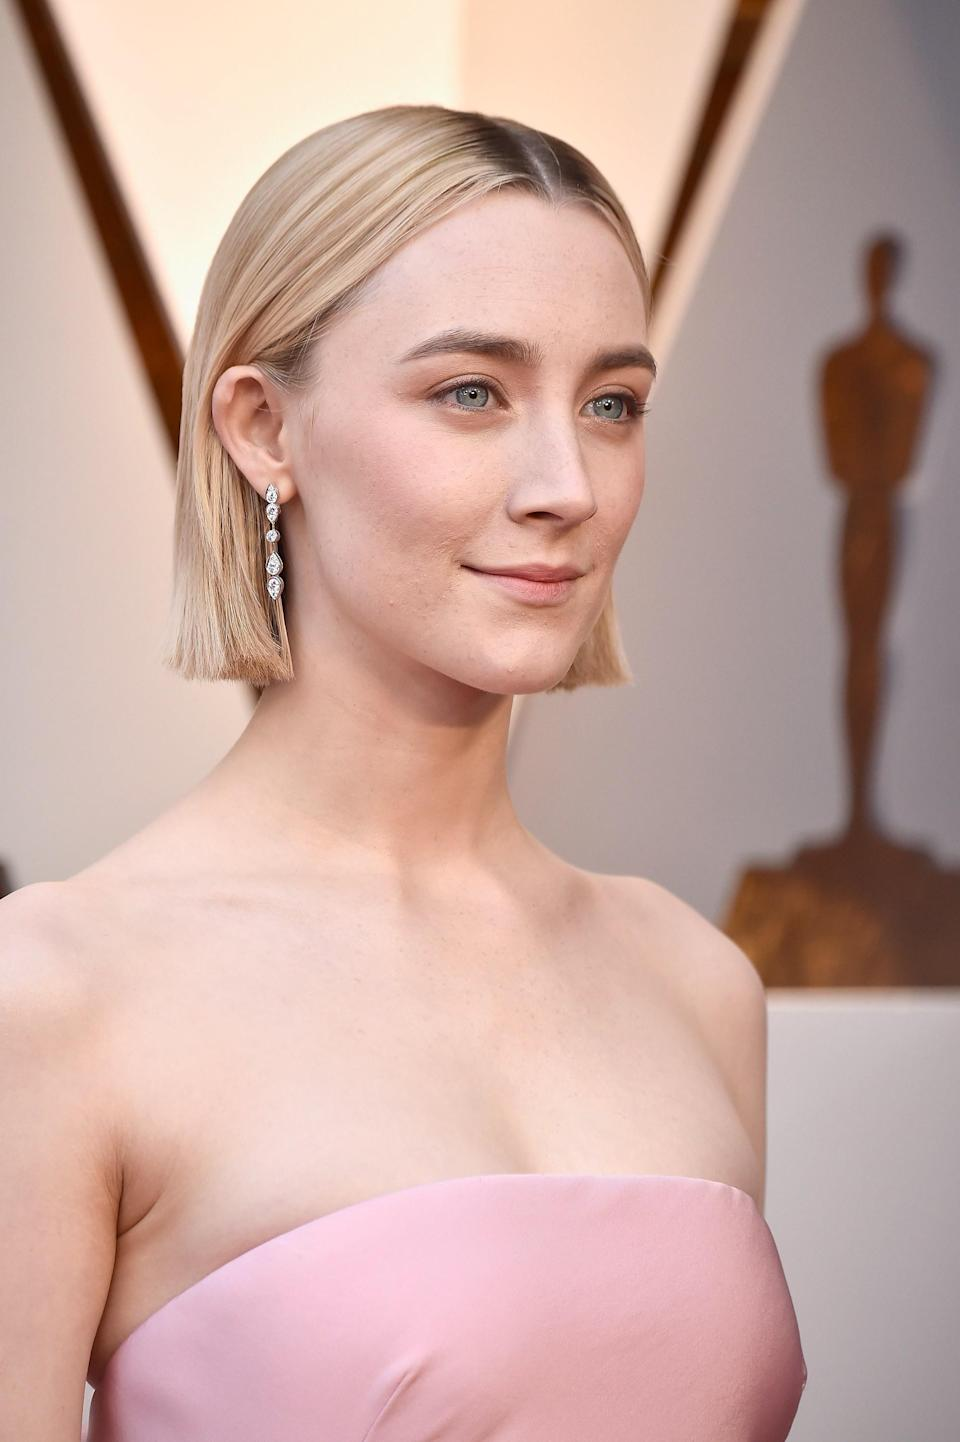 Hairstylist Adir Abergel shares the details as well as behind-the-scenes images of Saoirse Ronan's Oscar 2018 haircut.